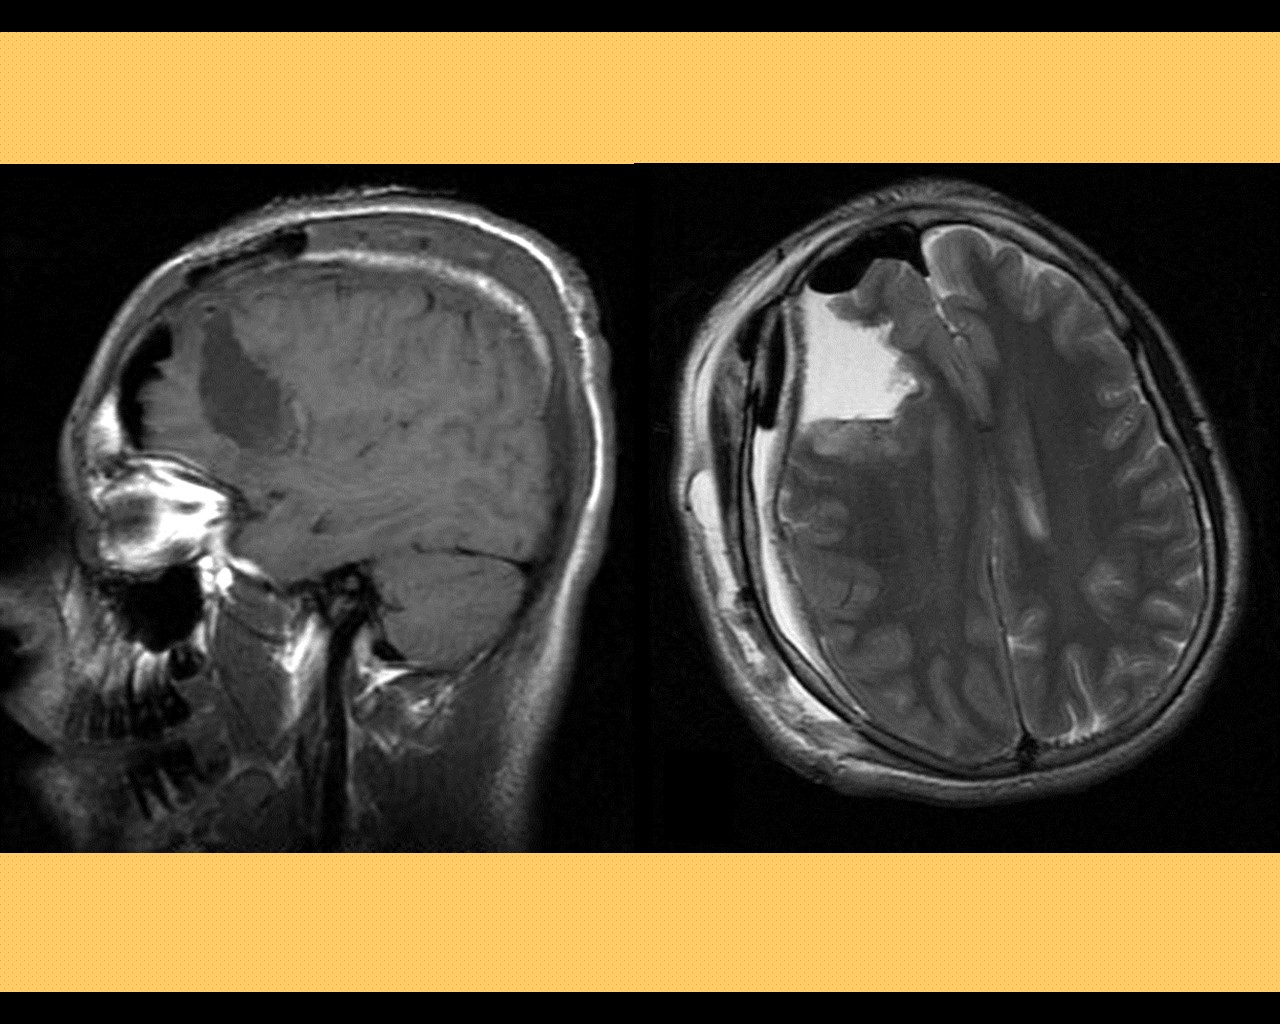 What are some medical causes of seizures?